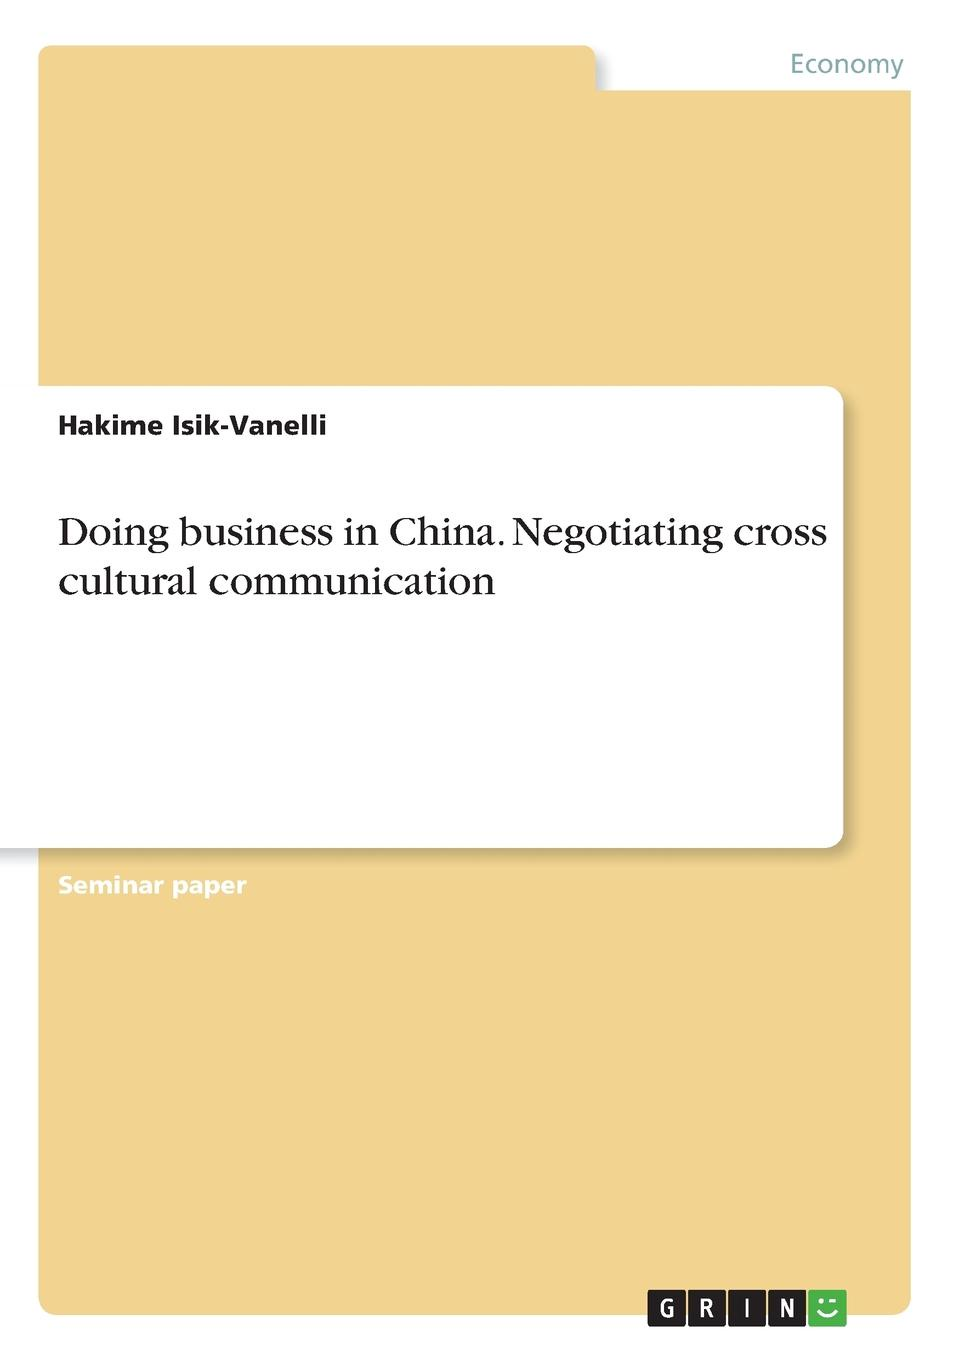 Hakime Isik-Vanelli Doing business in China. Negotiating cross cultural communication тахометр электронный made in china dt316nli wxb 003li ion